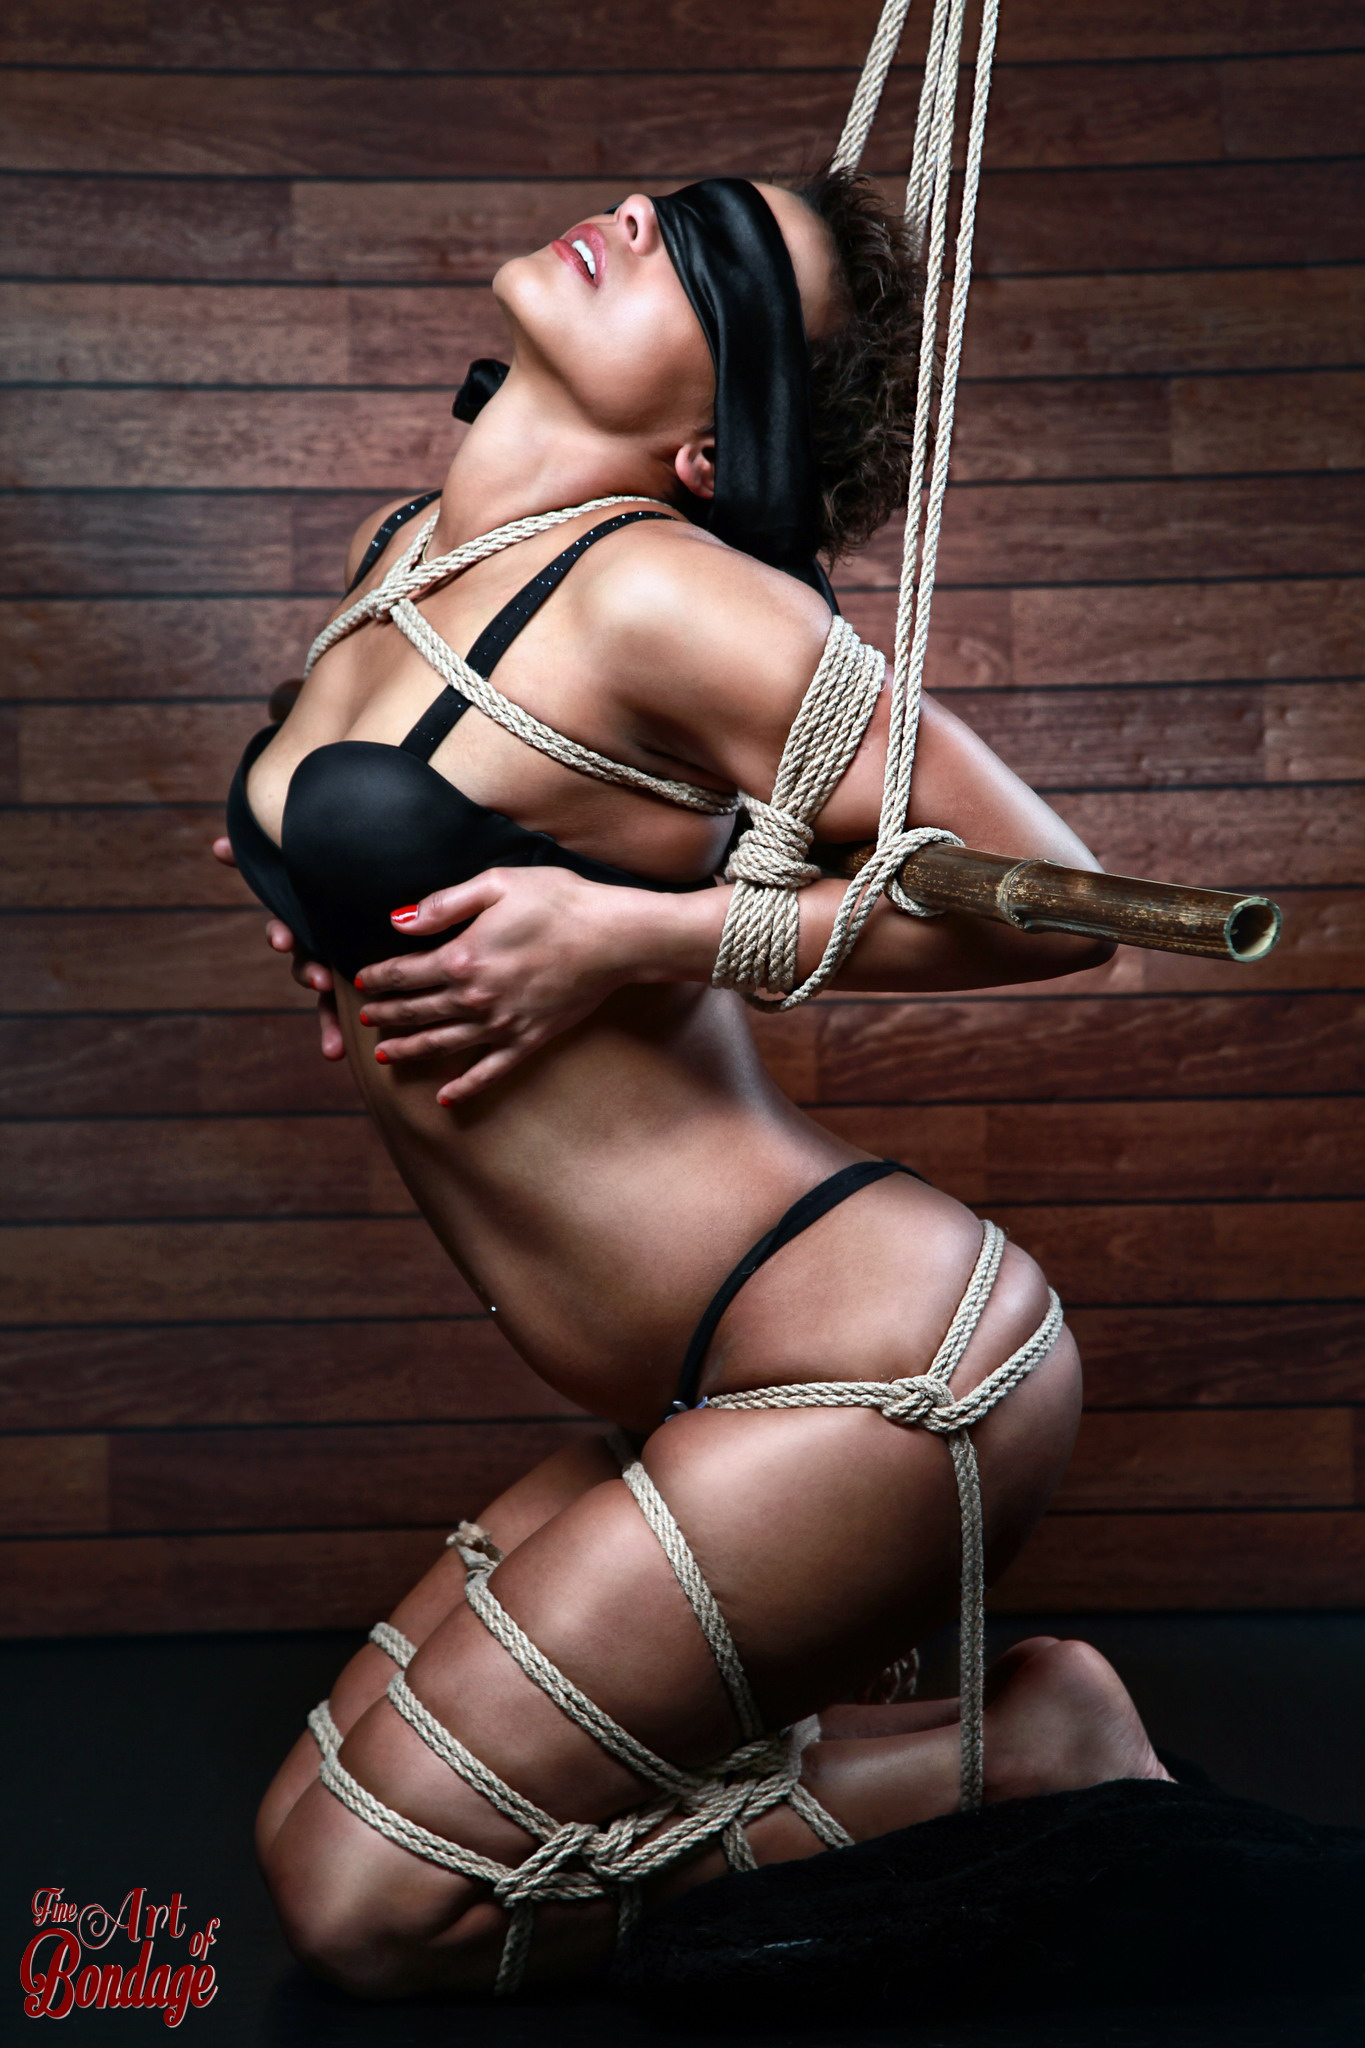 Bondage Pictures Gallery 72